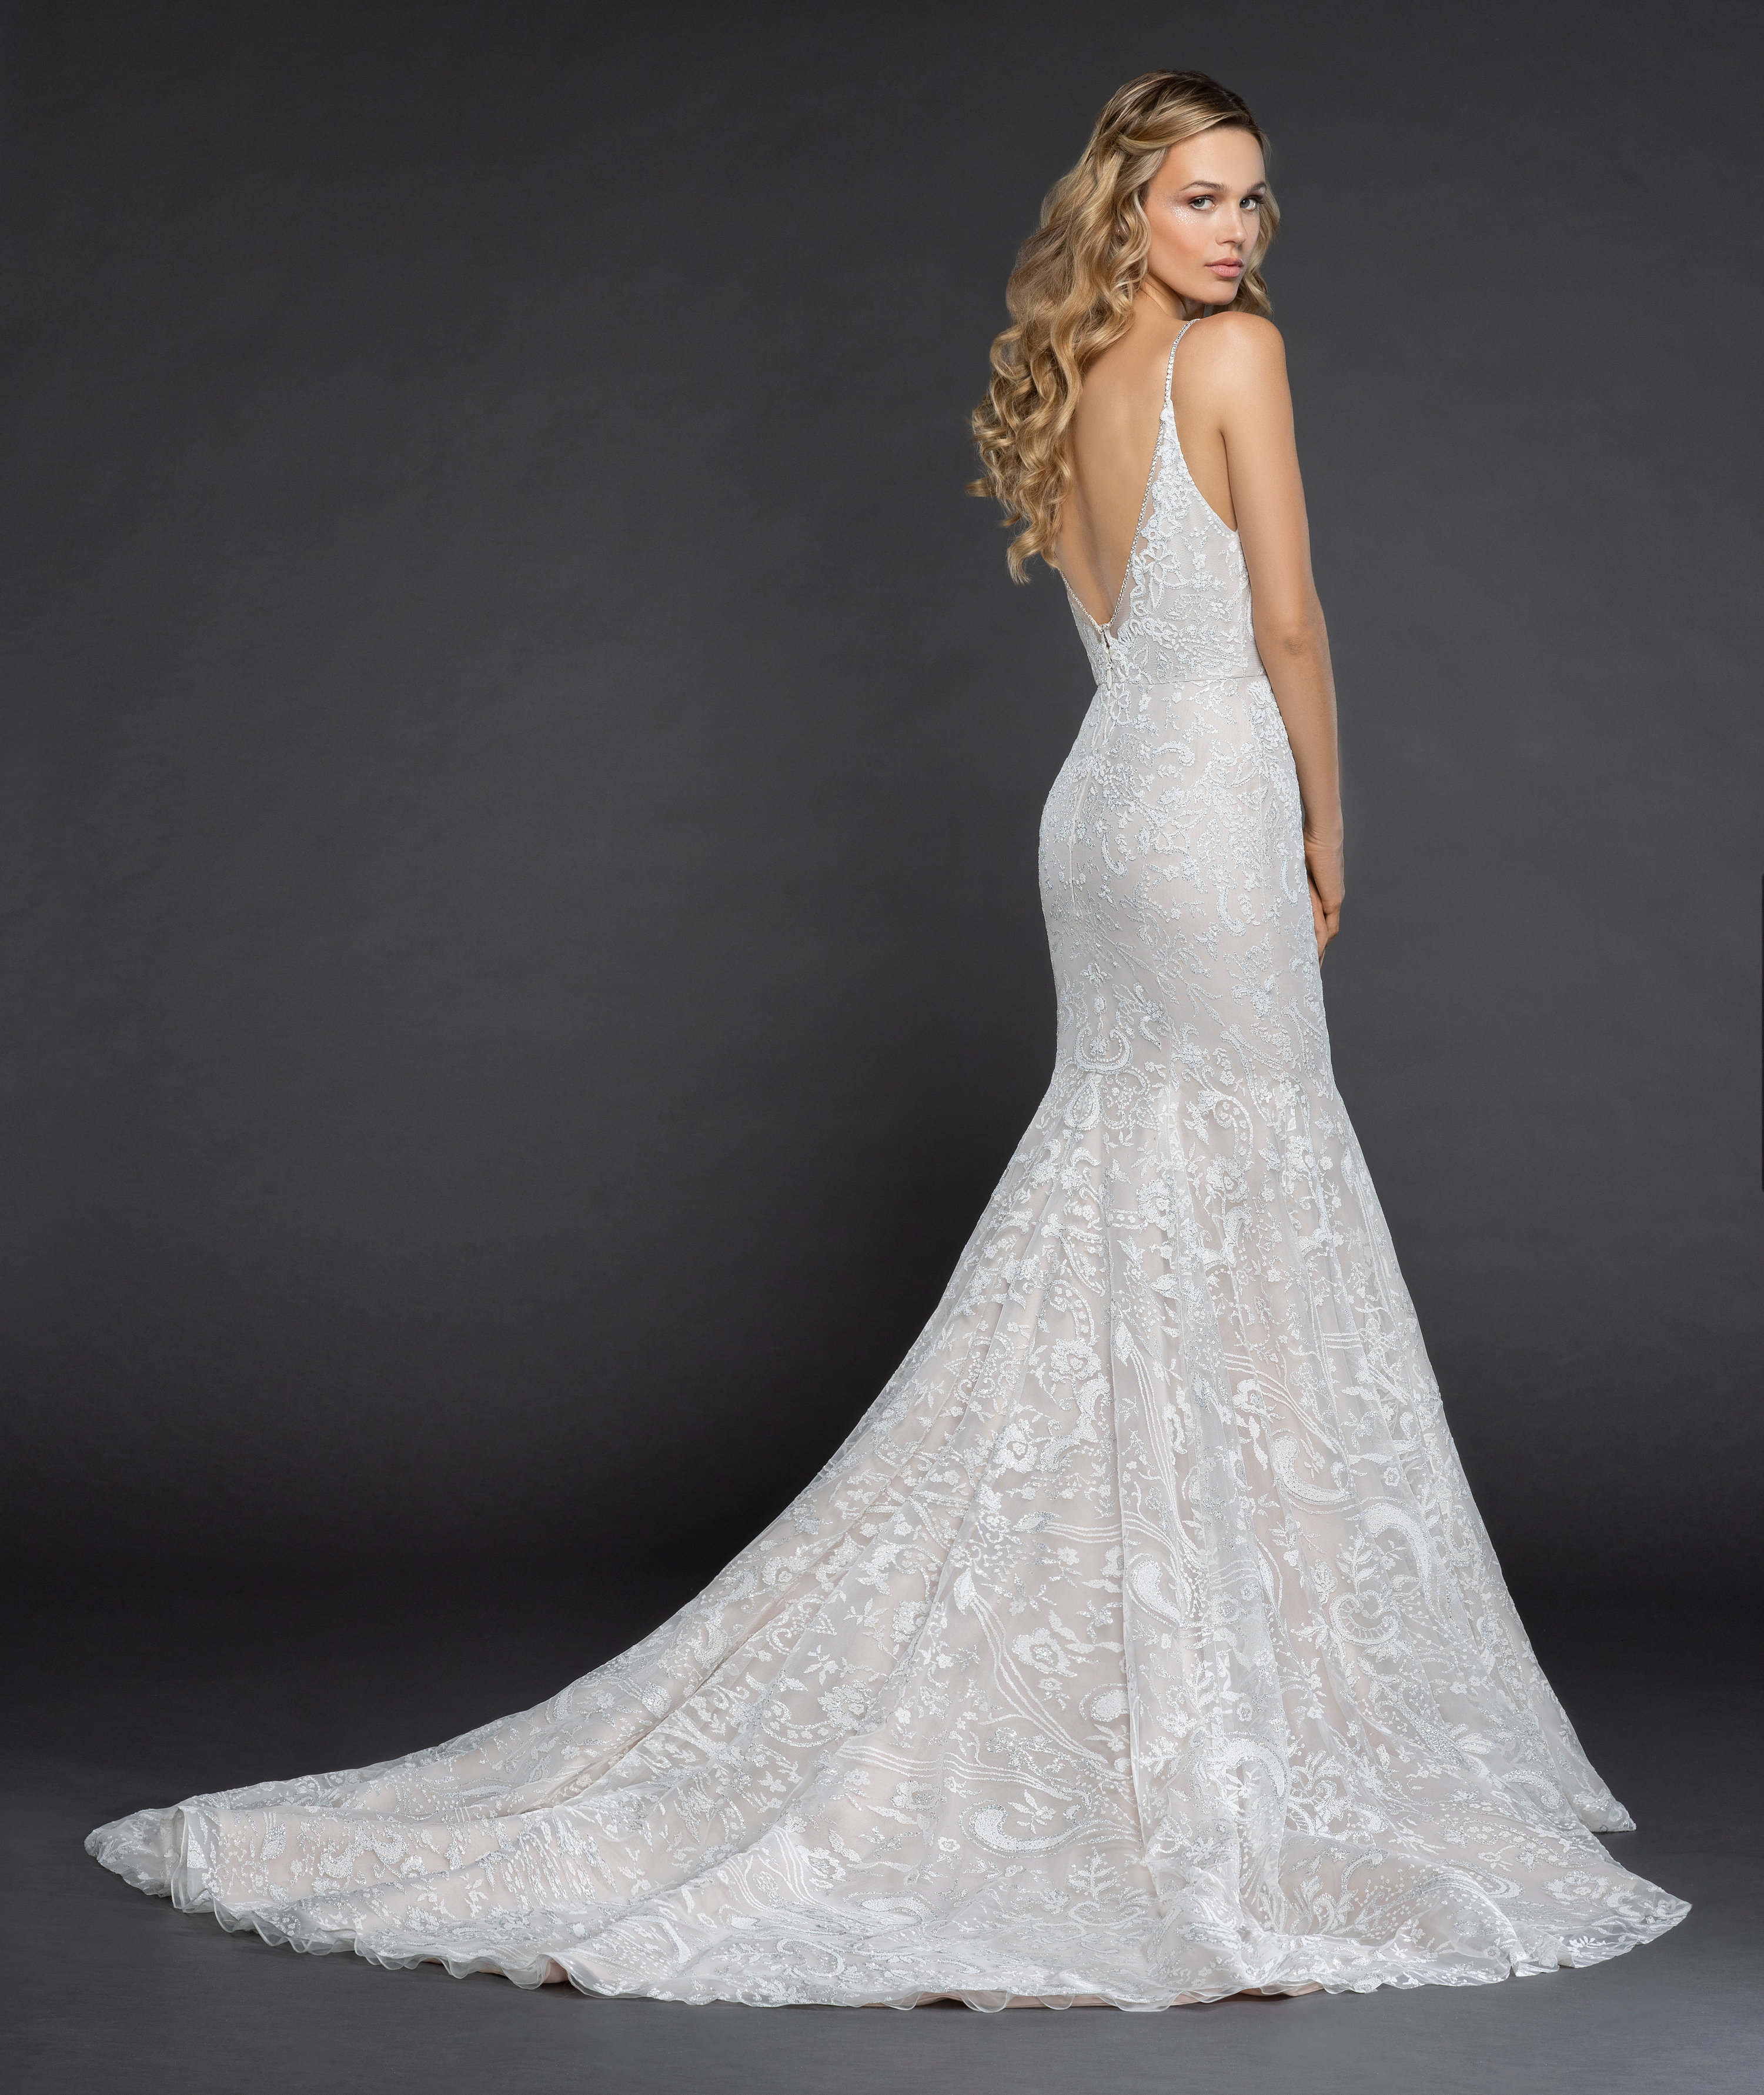 Bridal Gowns and Wedding Dresses by JLM Couture - Style 6865 Haruki